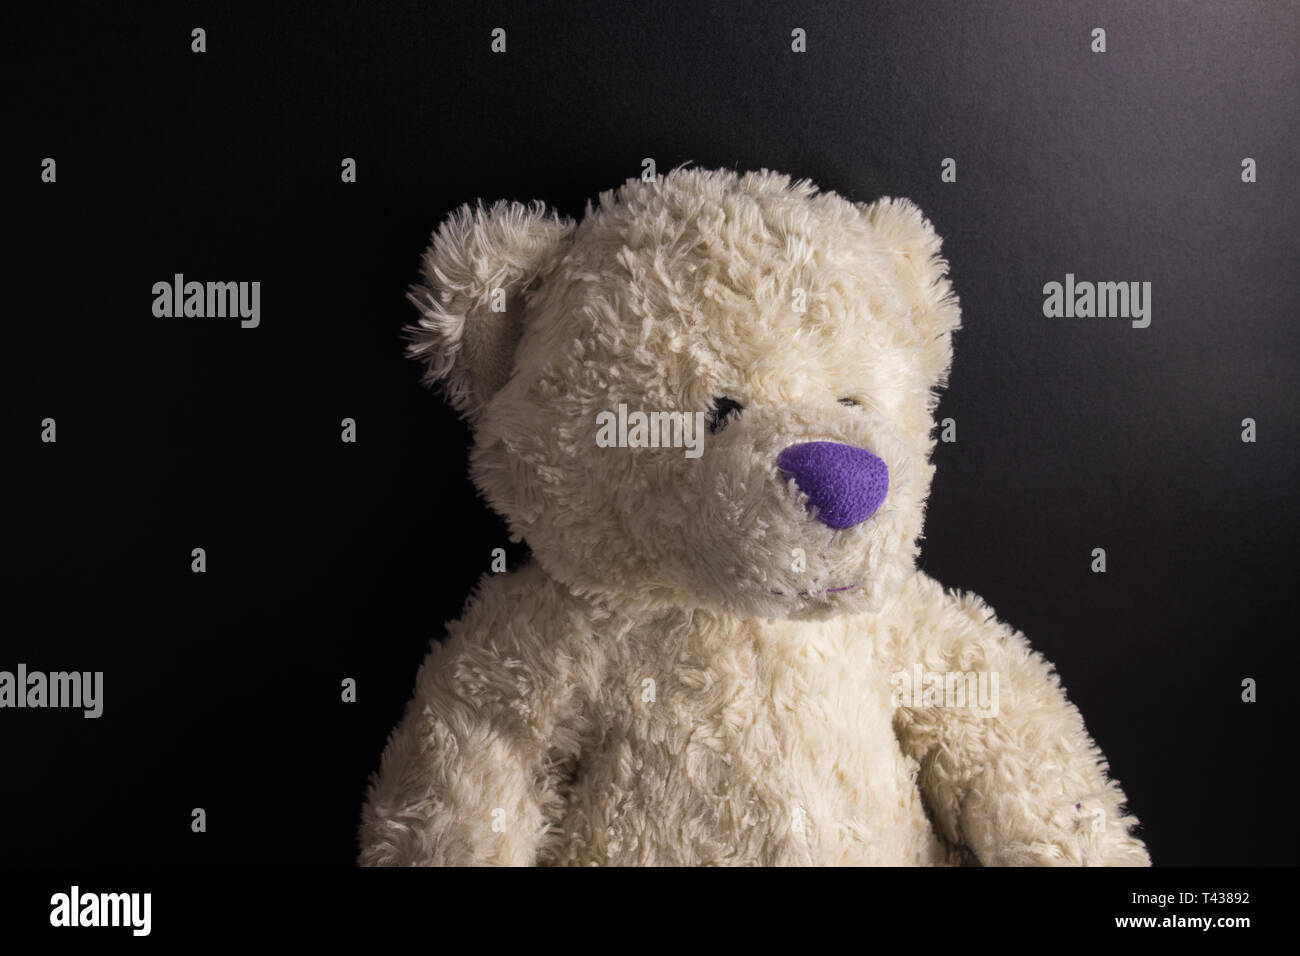 8e931afbc White custom hand made Teddy Bear with purple nose on dark background -  Stock Image